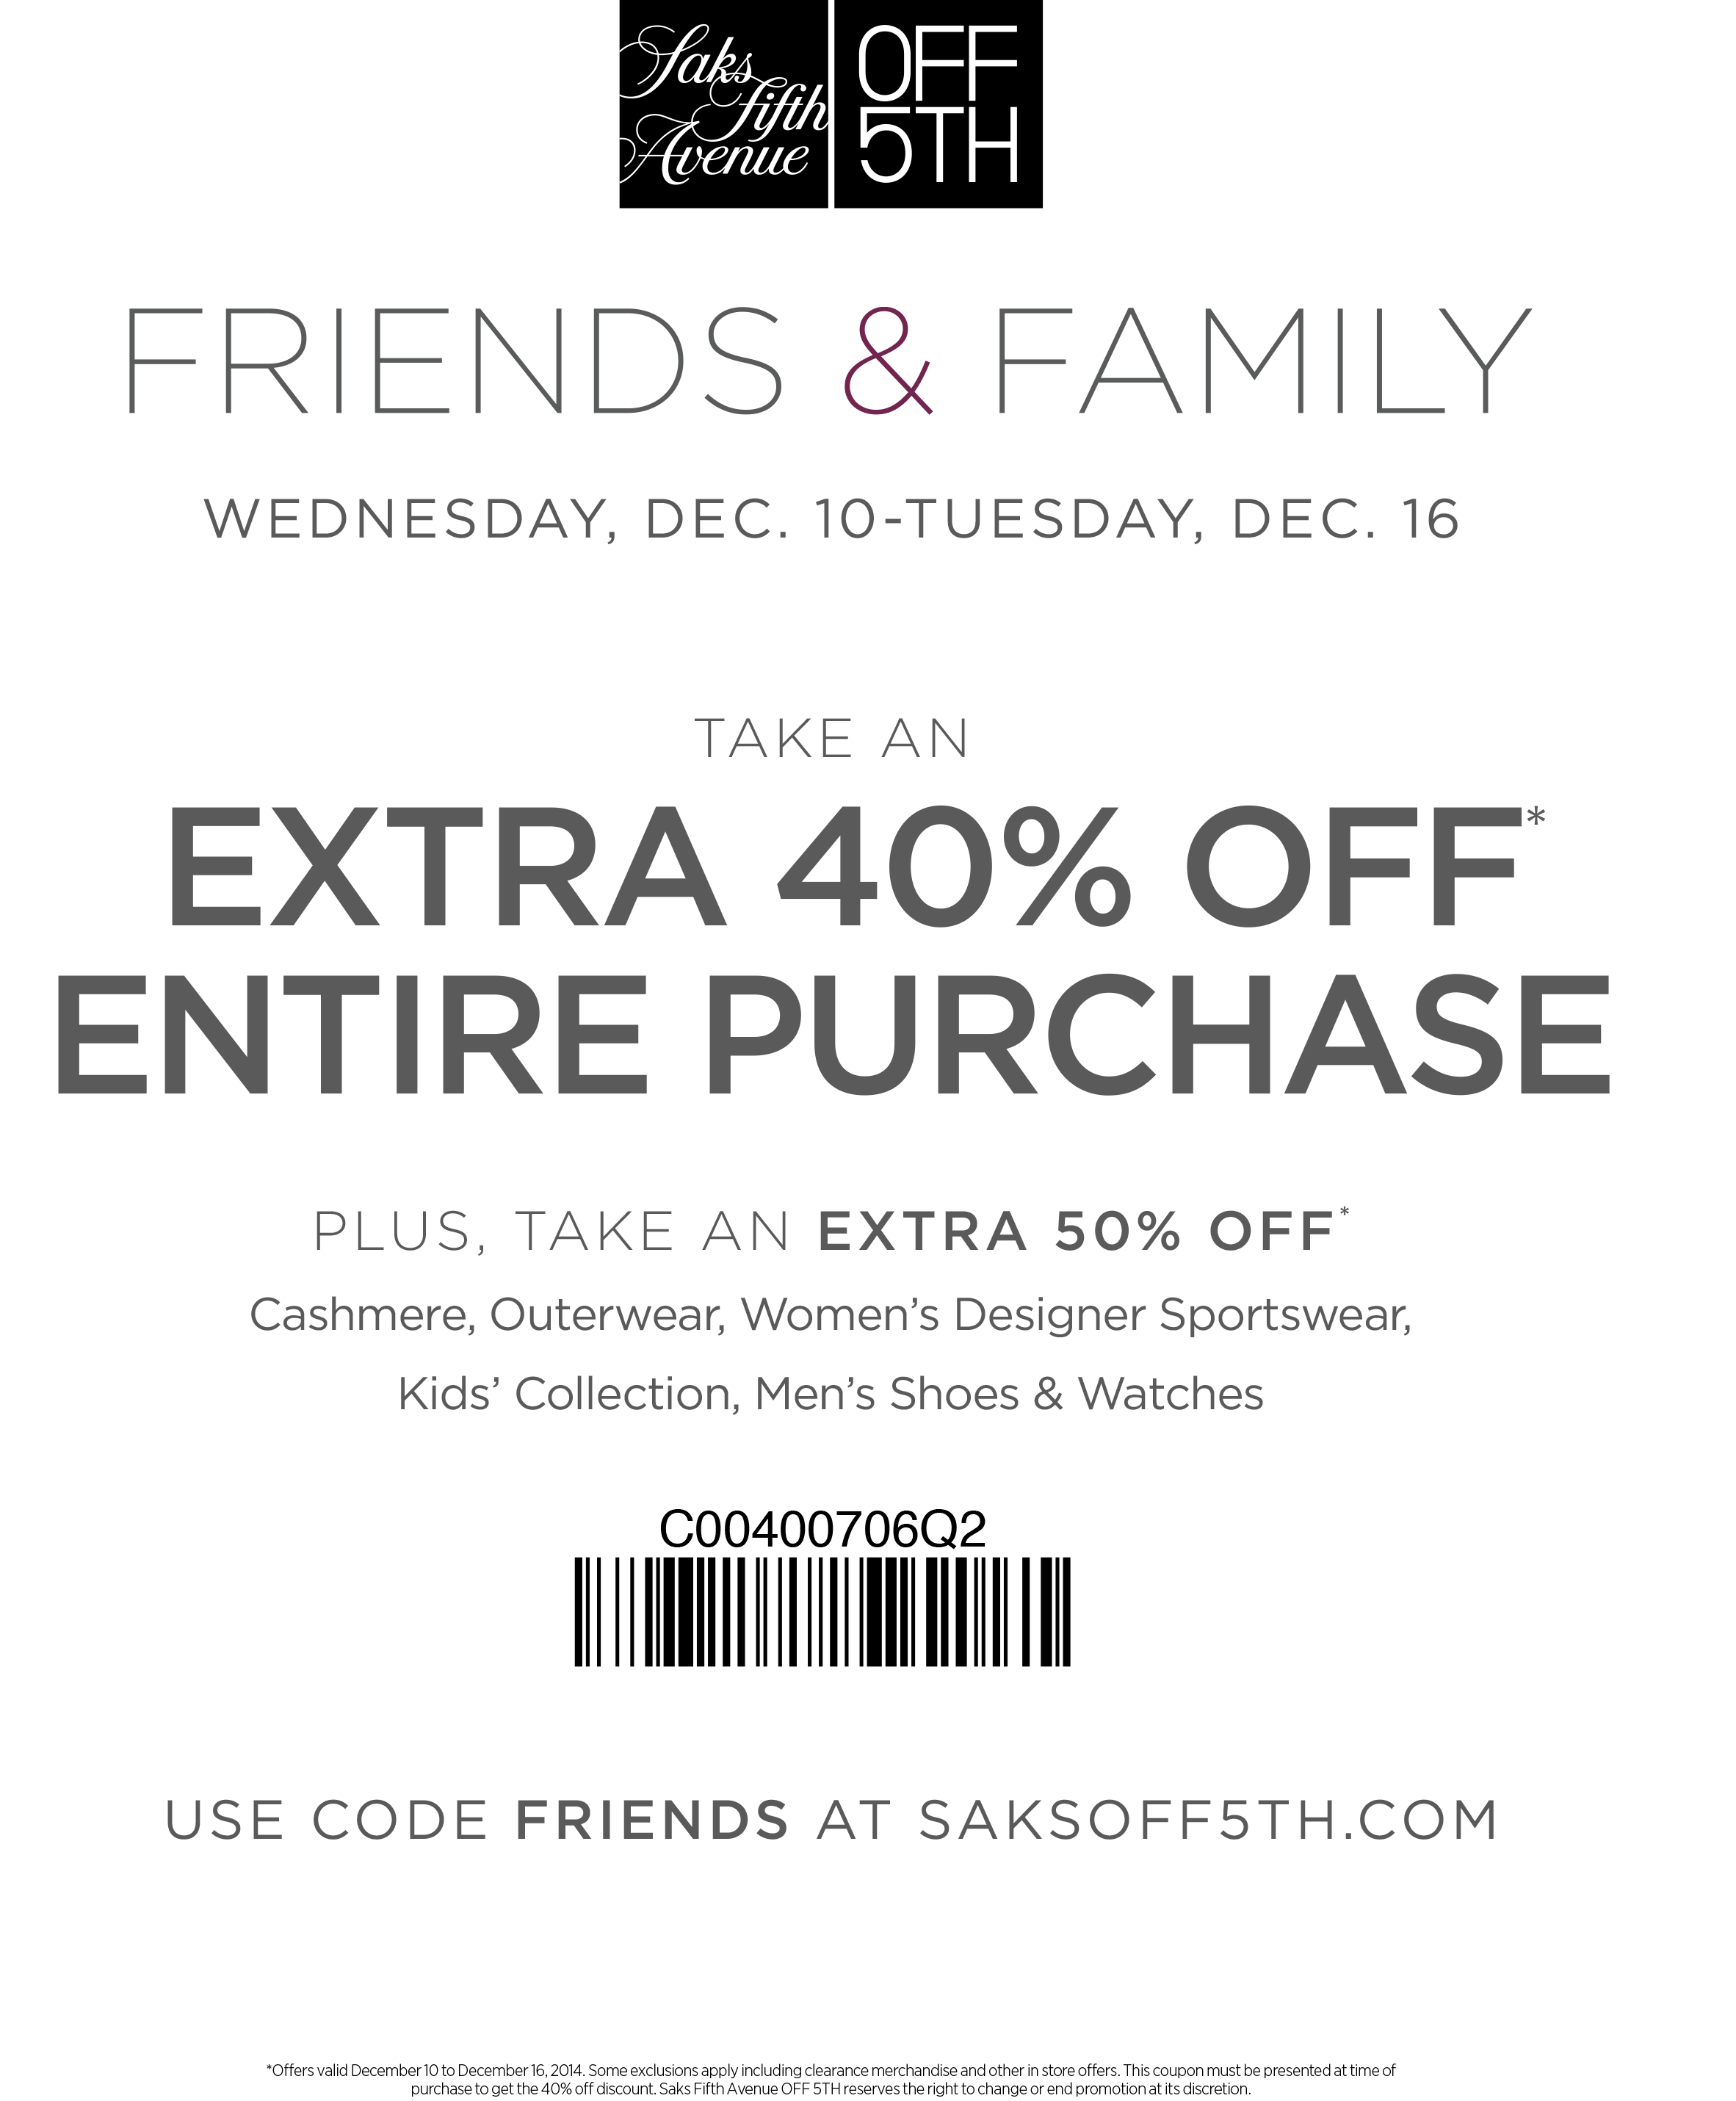 OFF 5TH Coupon November 2017 Extra 40% off everything at Saks OFF 5TH, or online via promo code FRIENDS